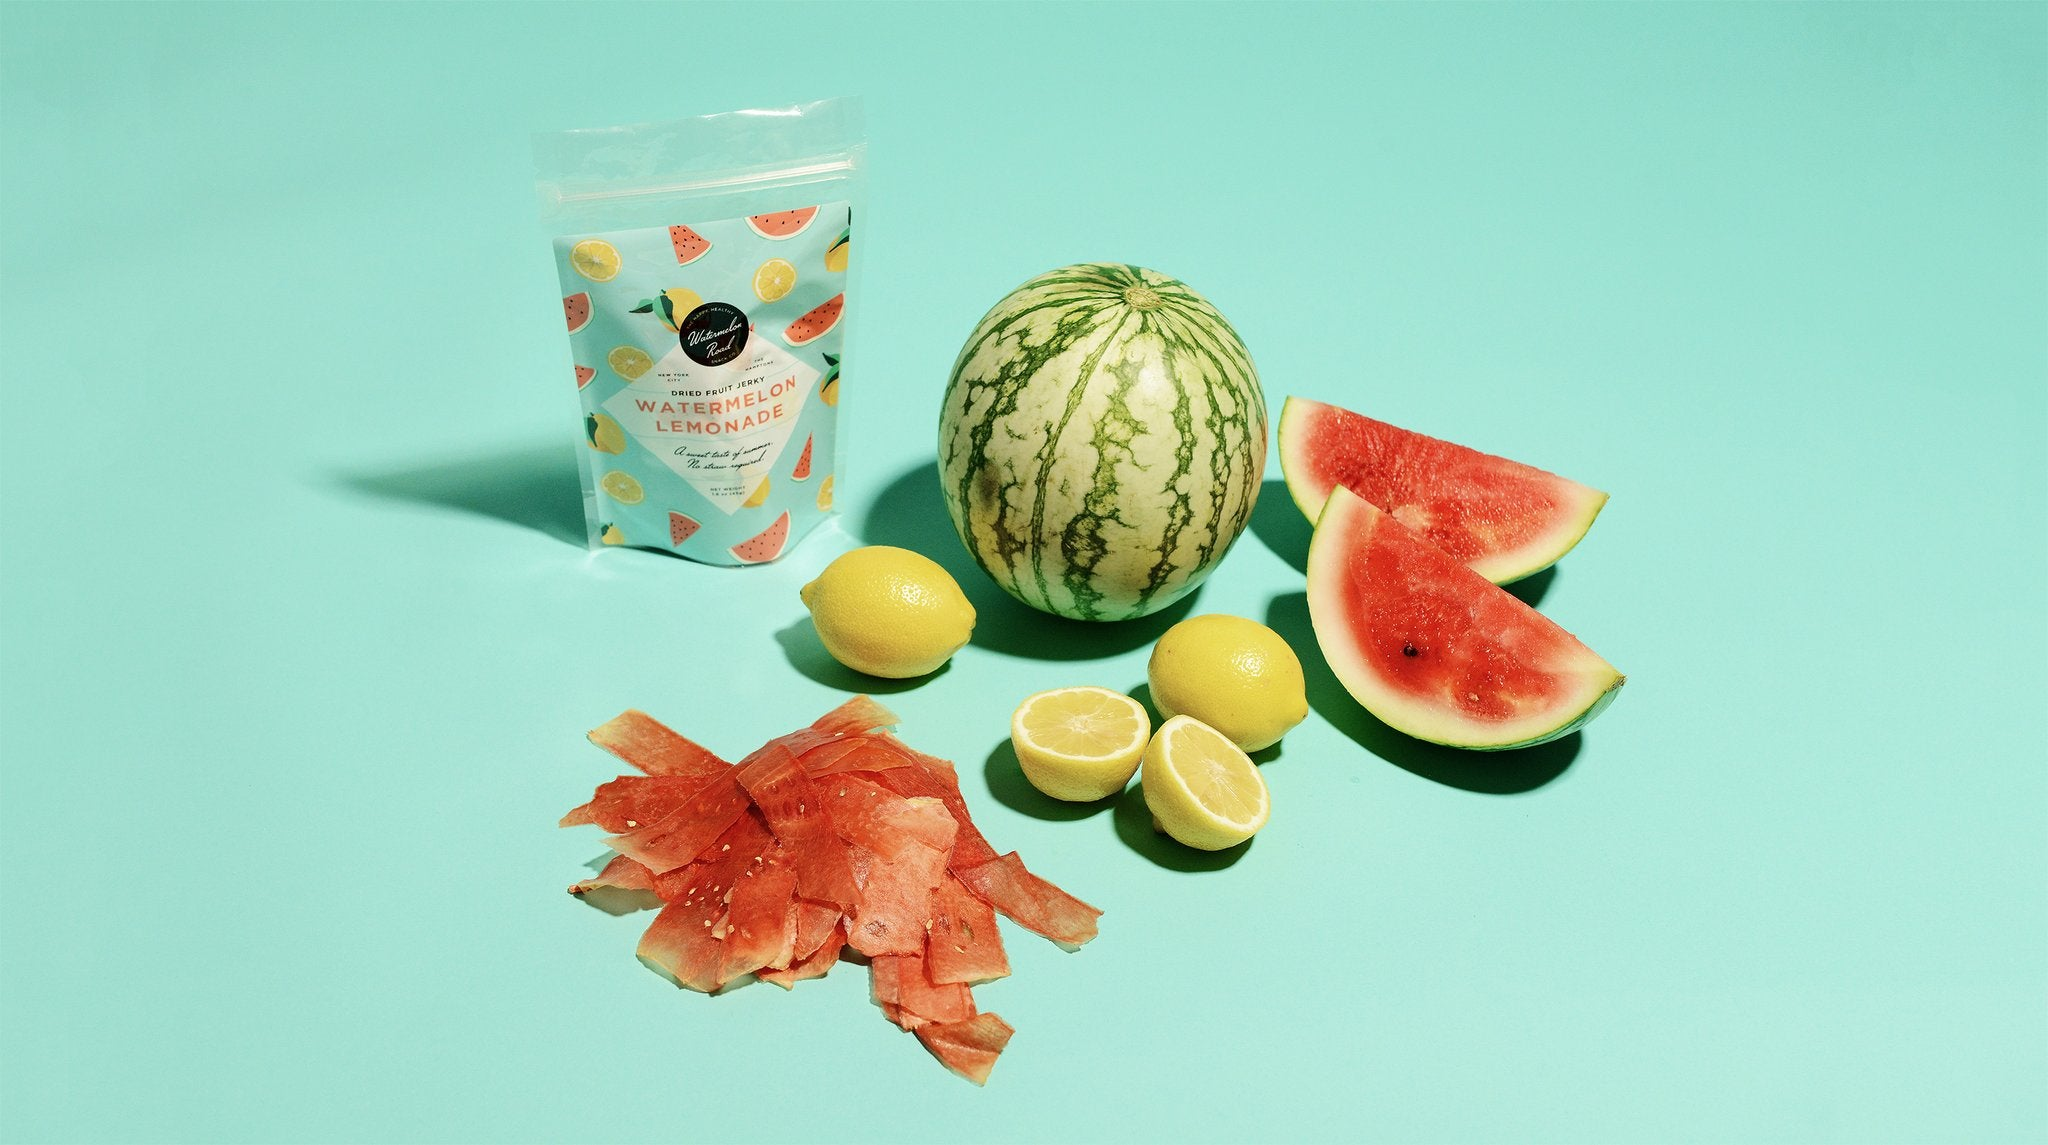 Watermelon Road dried fruit myPanier